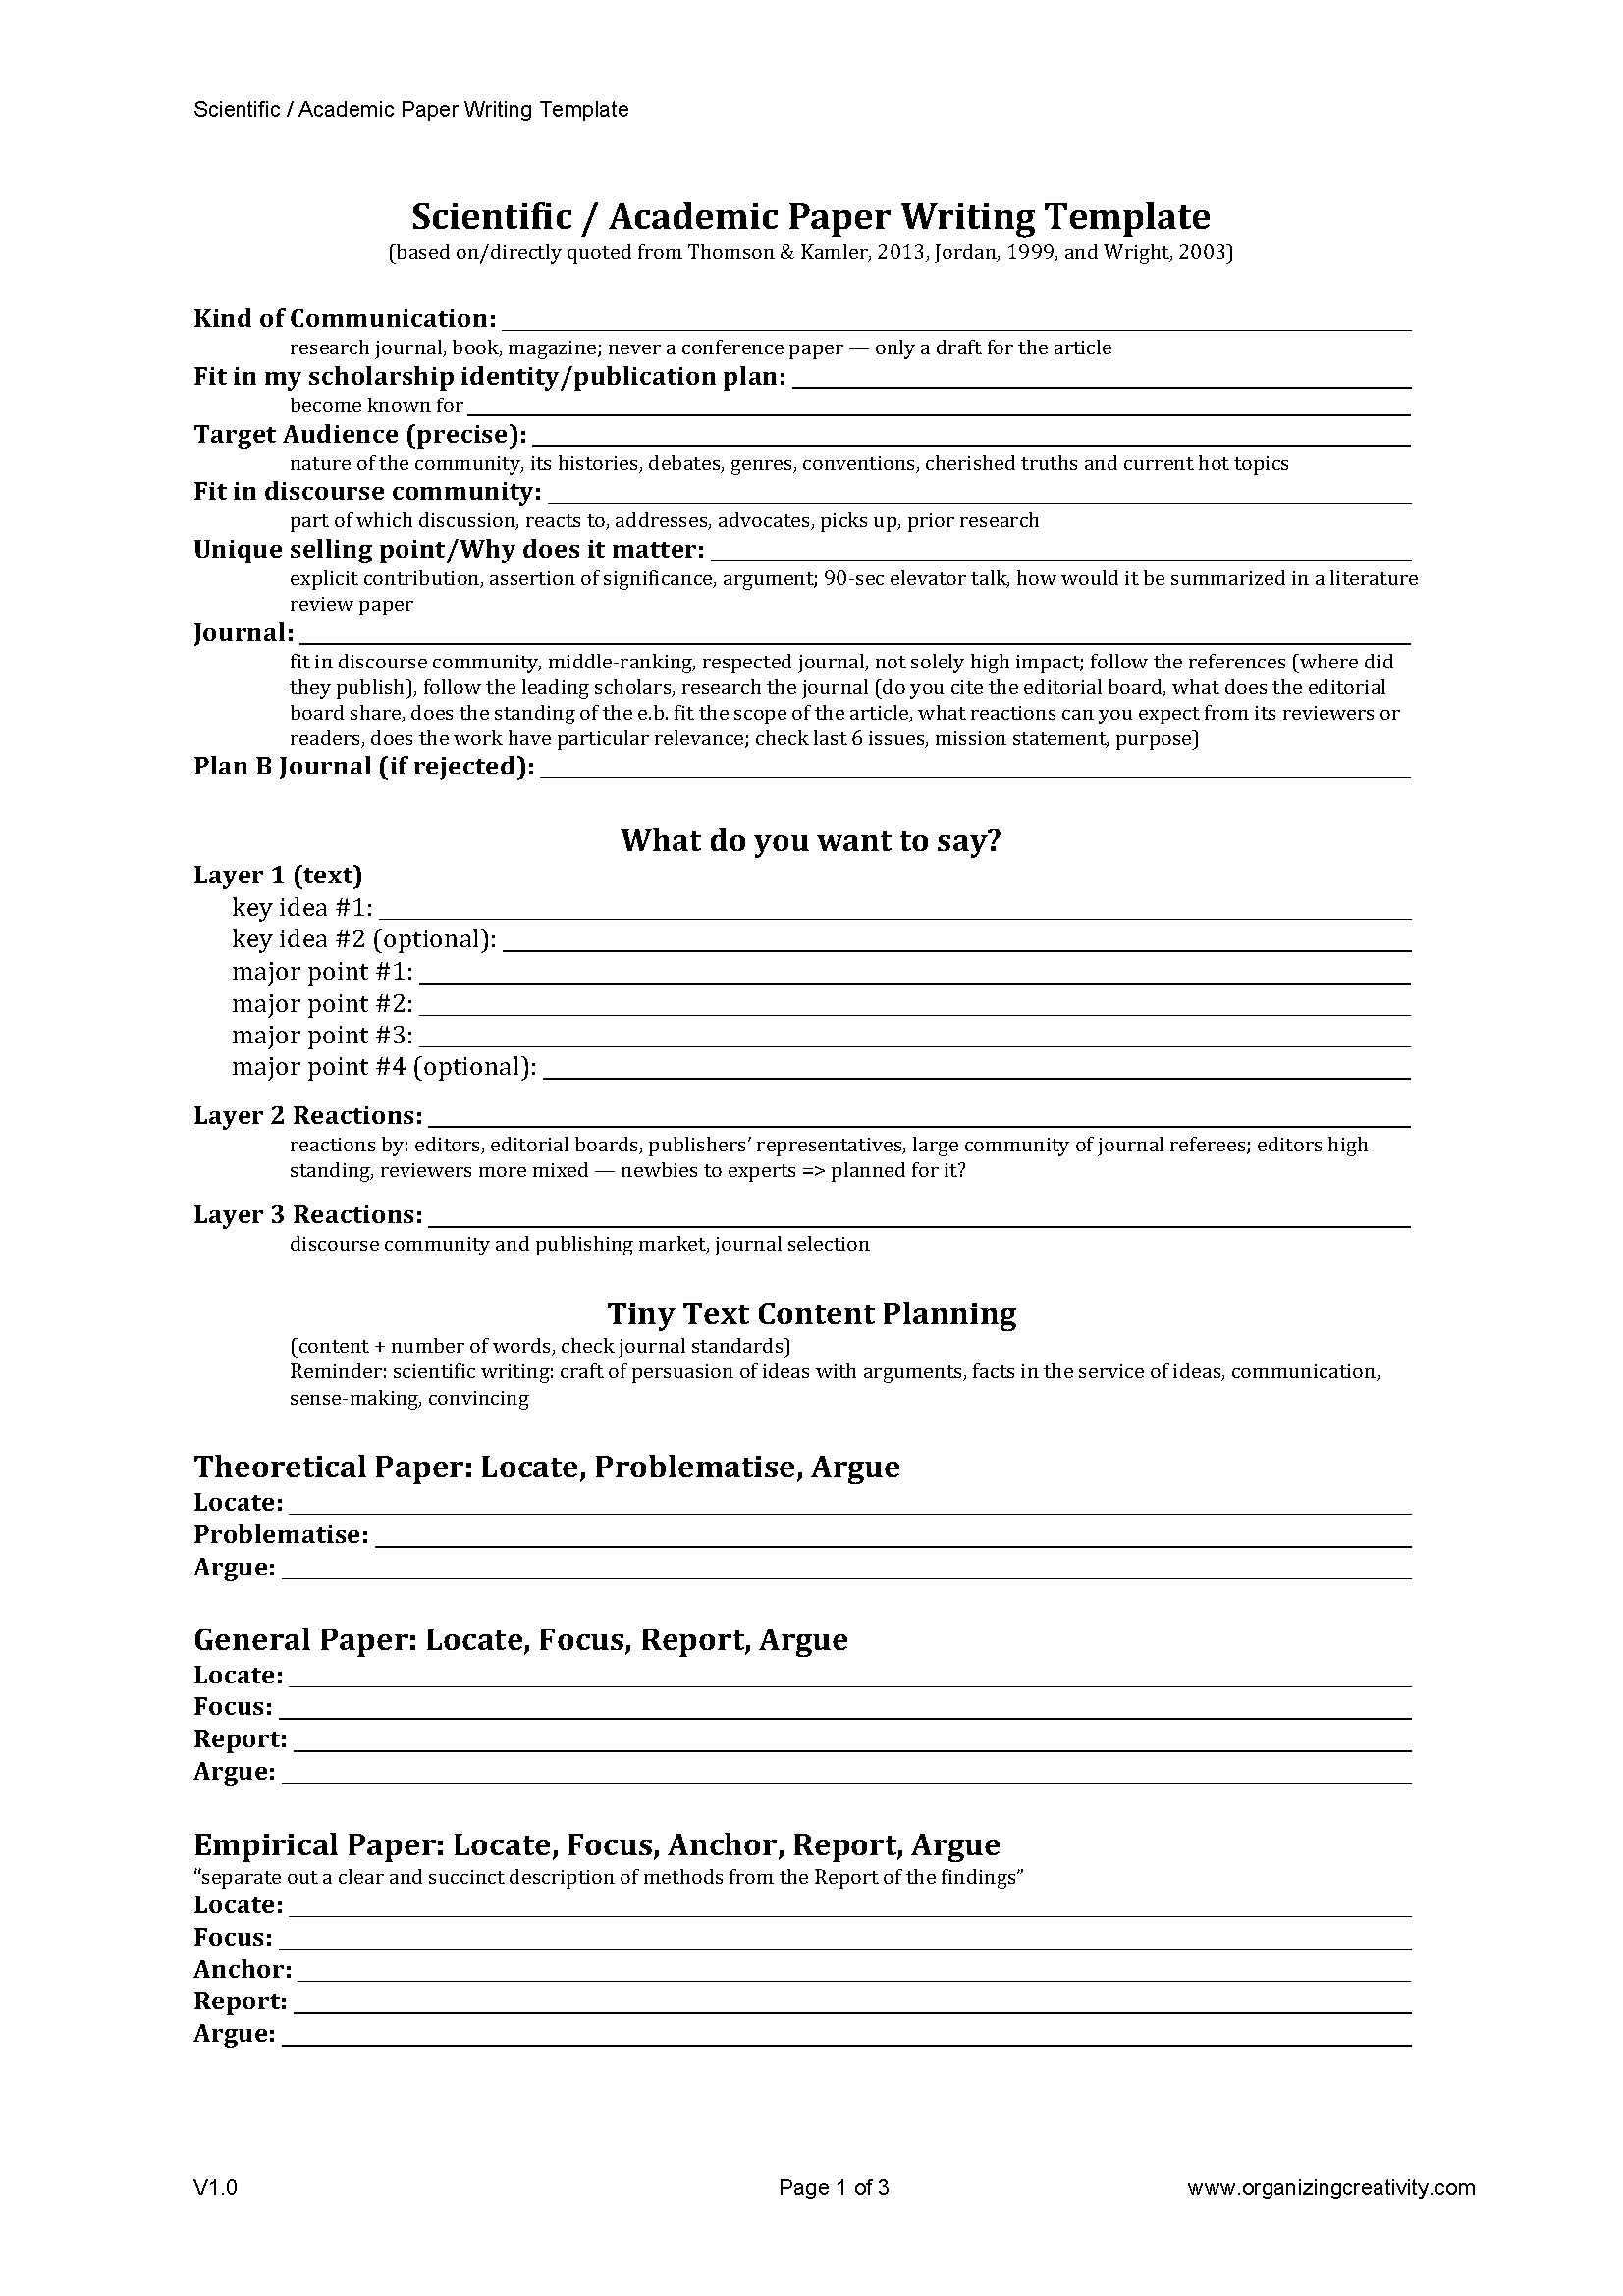 academic journal template word - scientific academic paper writing template organizing